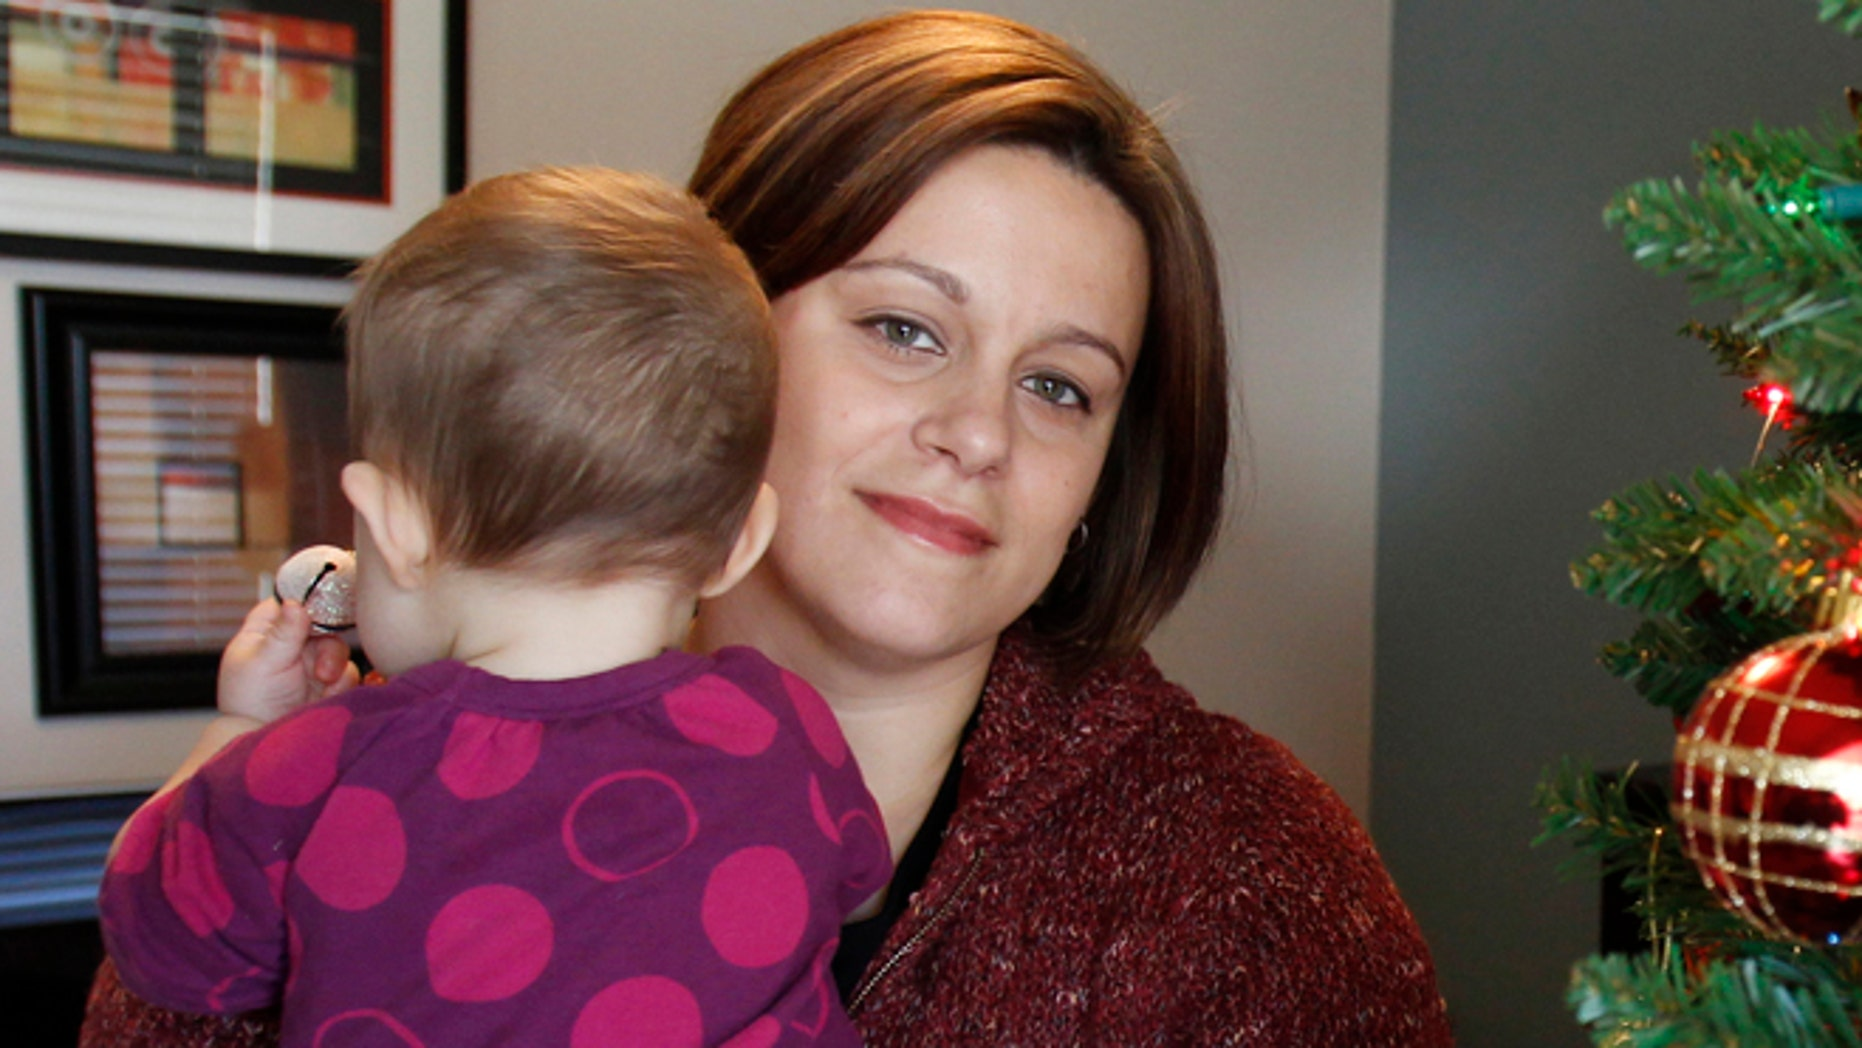 FILE - This photo made Dec. 8, 2011, in Withamsville, Ohio, shows teacher Christa Dias holding her 11-month-old daughter in her home.  (AP Photo/The Cincinnati Enquirer, Gary Landers, File)